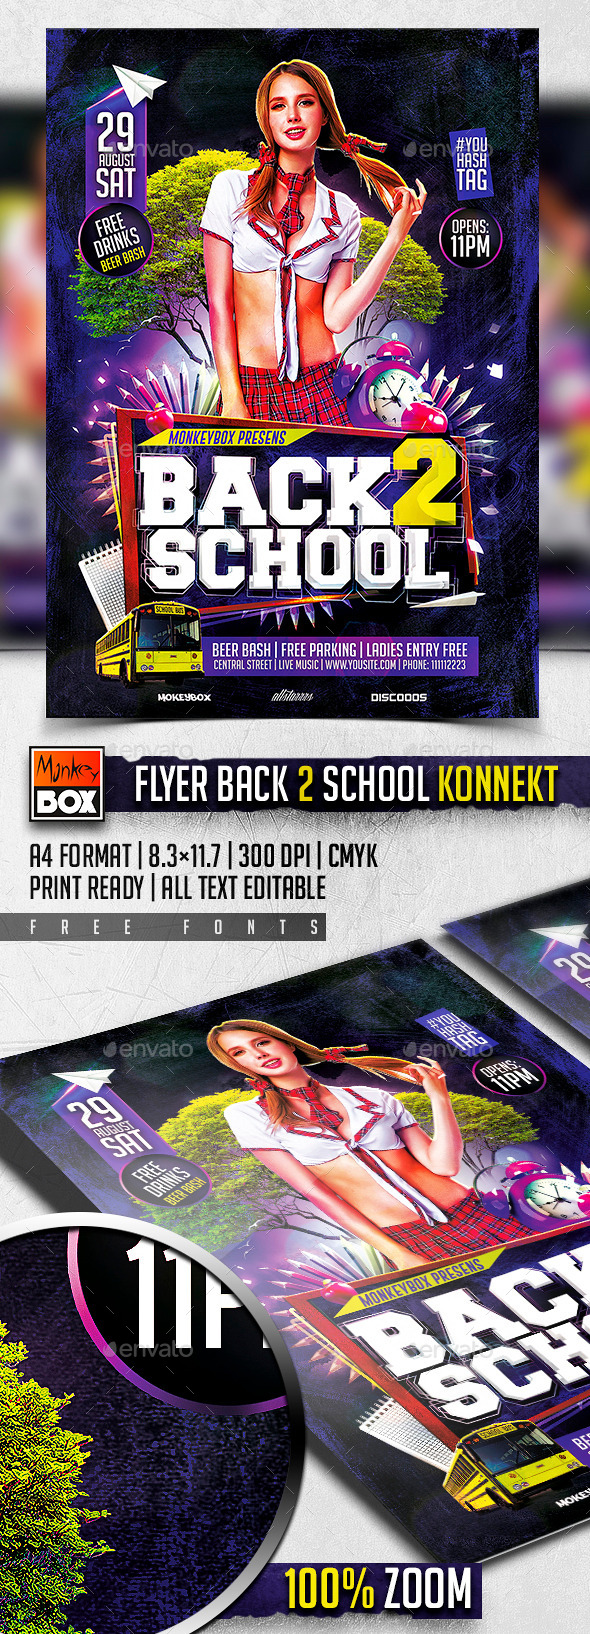 Flyer Back 2 School Konnekt - Flyers Print Templates